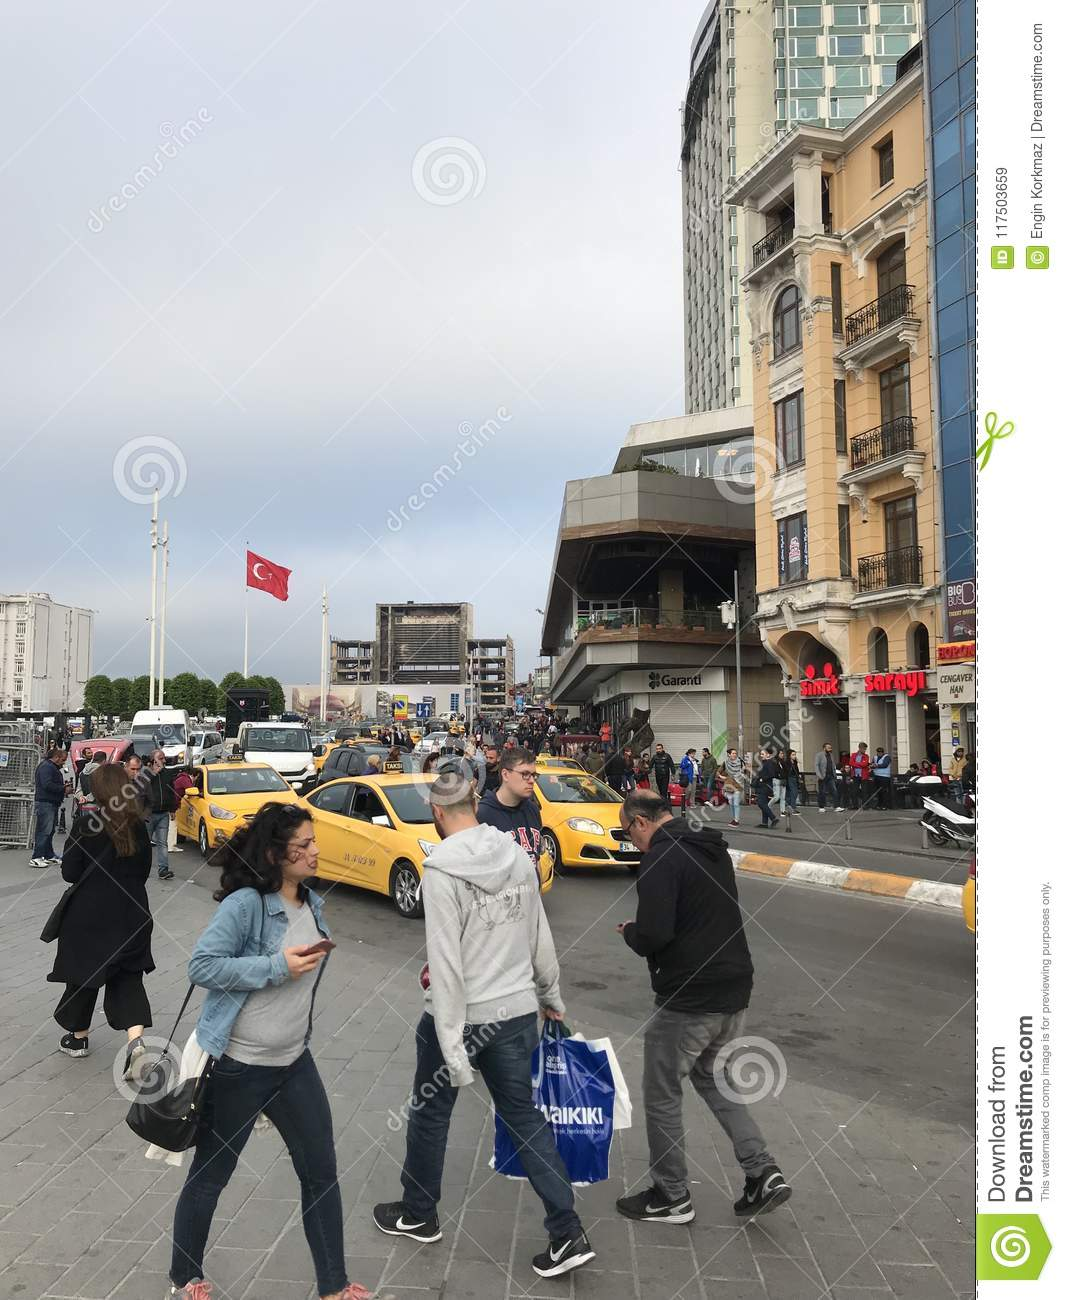 People walking around and cars in traffic at Taksim Square, Istanbul